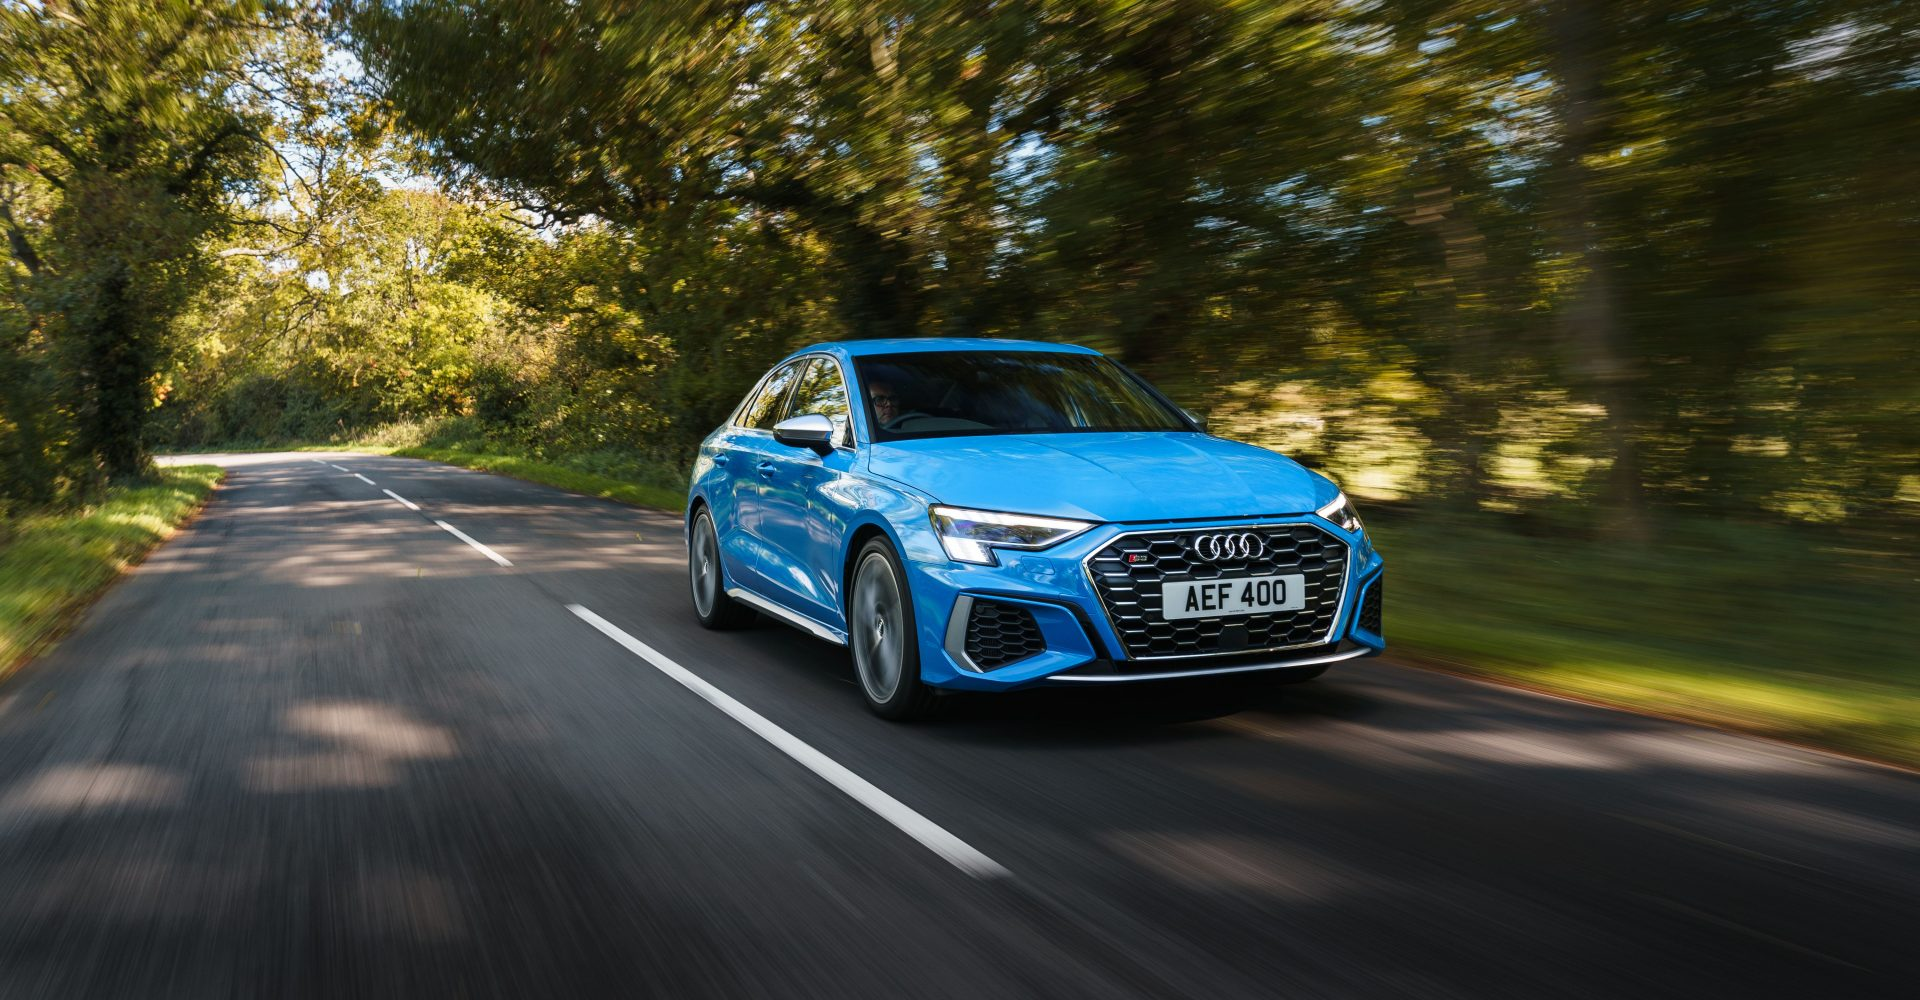 First Drive: Can the Audi S3 Saloon continue to be the ideal everyday sports car?